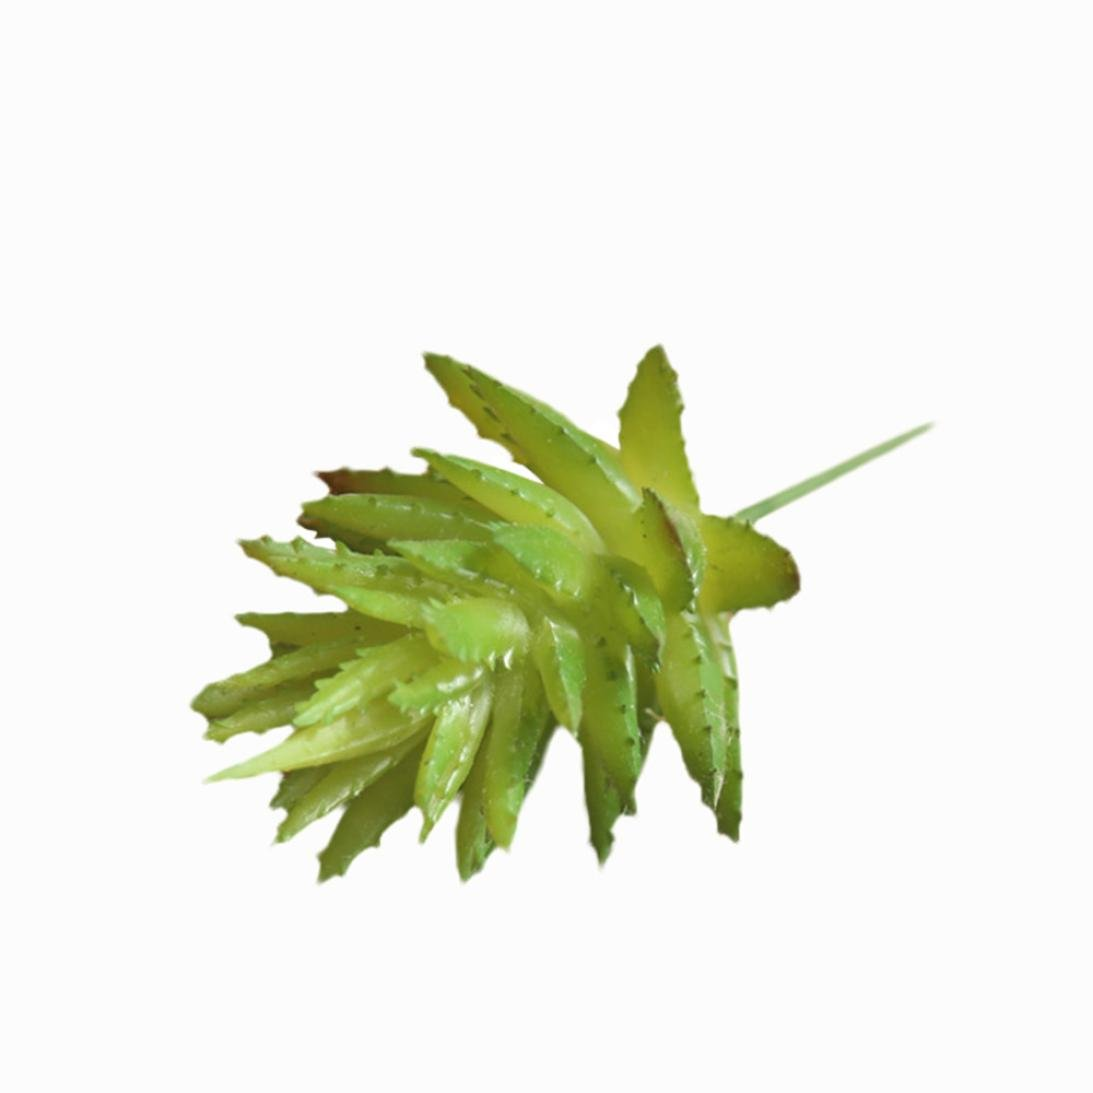 Artificial Flowers Clearance, Paymenow Fake Flowers Succulents Aloe Vera Floral Wedding Bouquet Party Home Garden Office Dining Table Decor (Green)